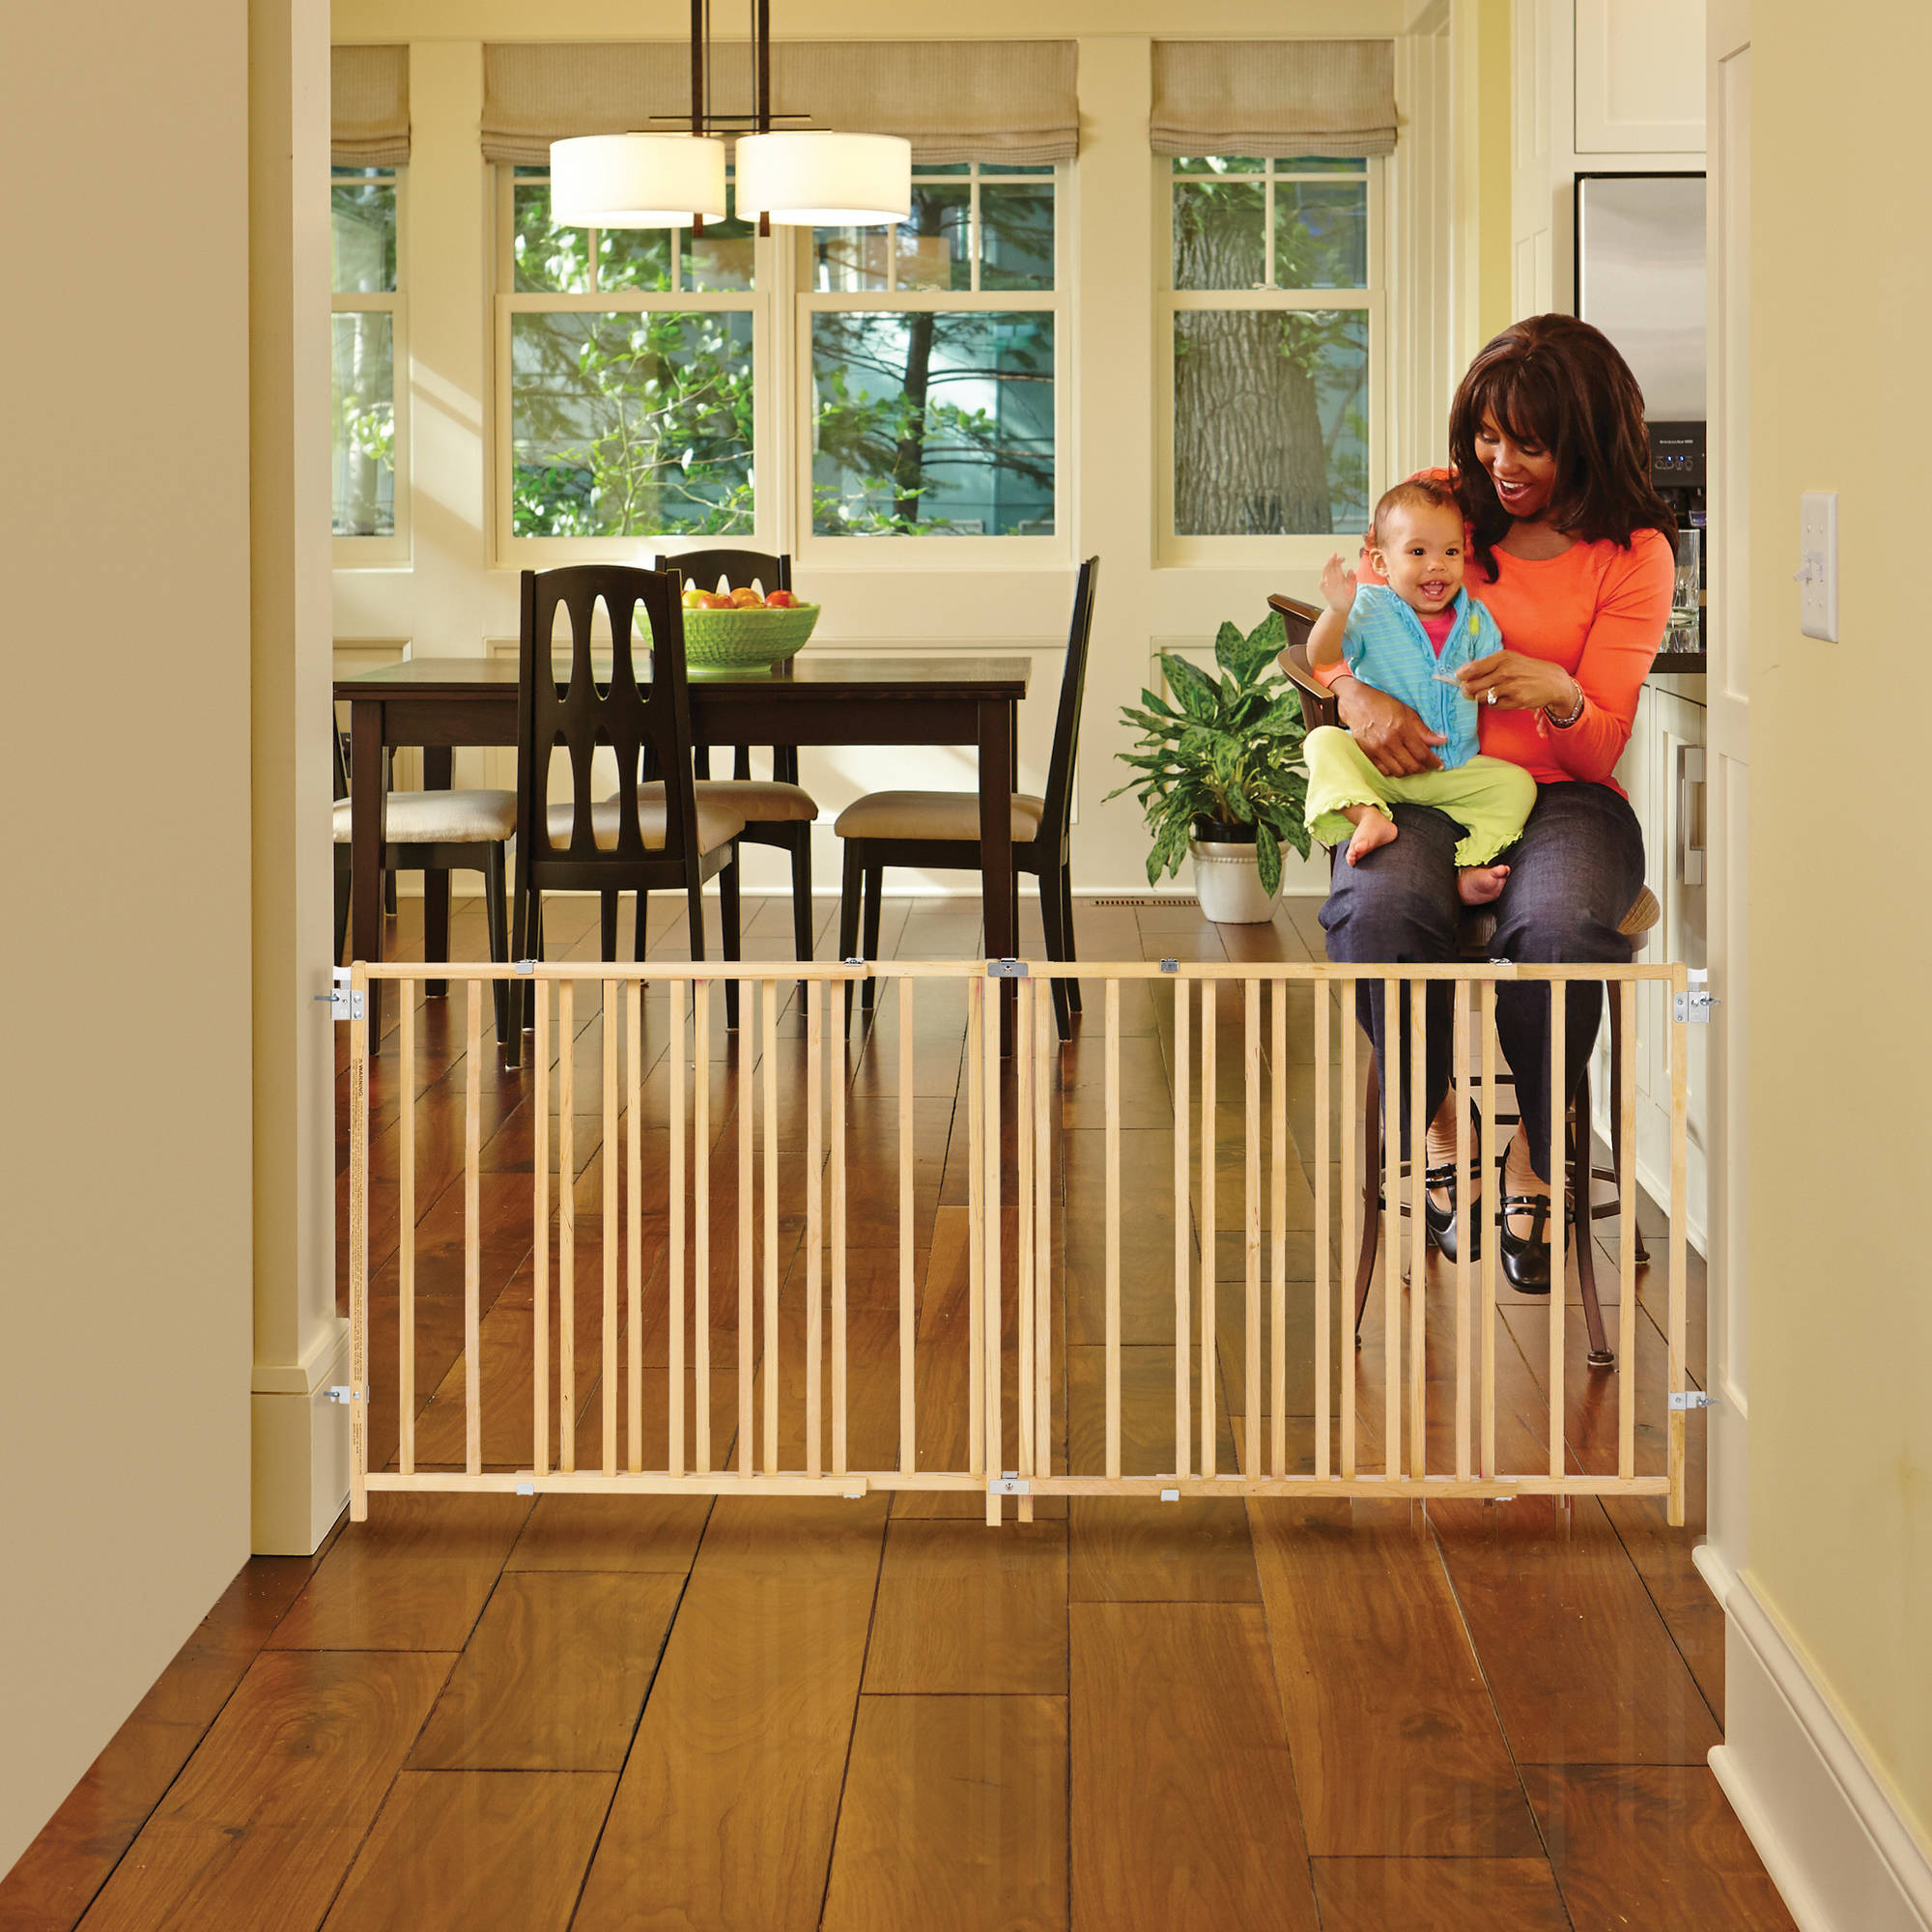 Product Image North State Natural Wood Extra Wide Swing Baby Gate, ...